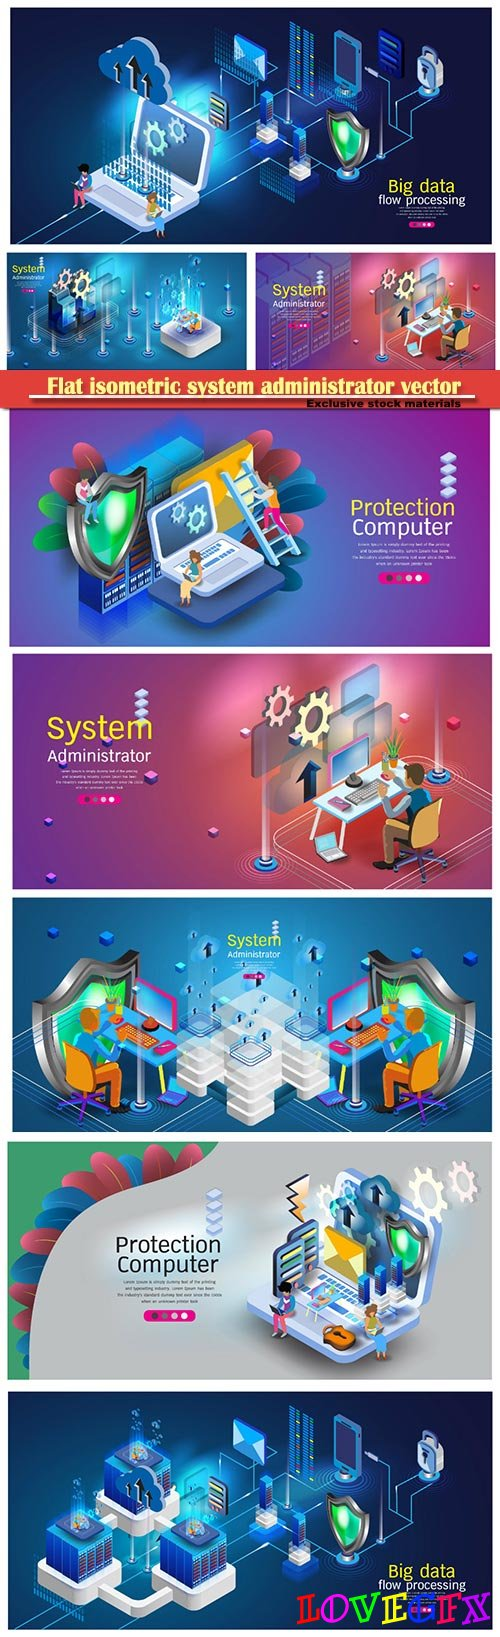 Flat isometric system administrator vector illustration